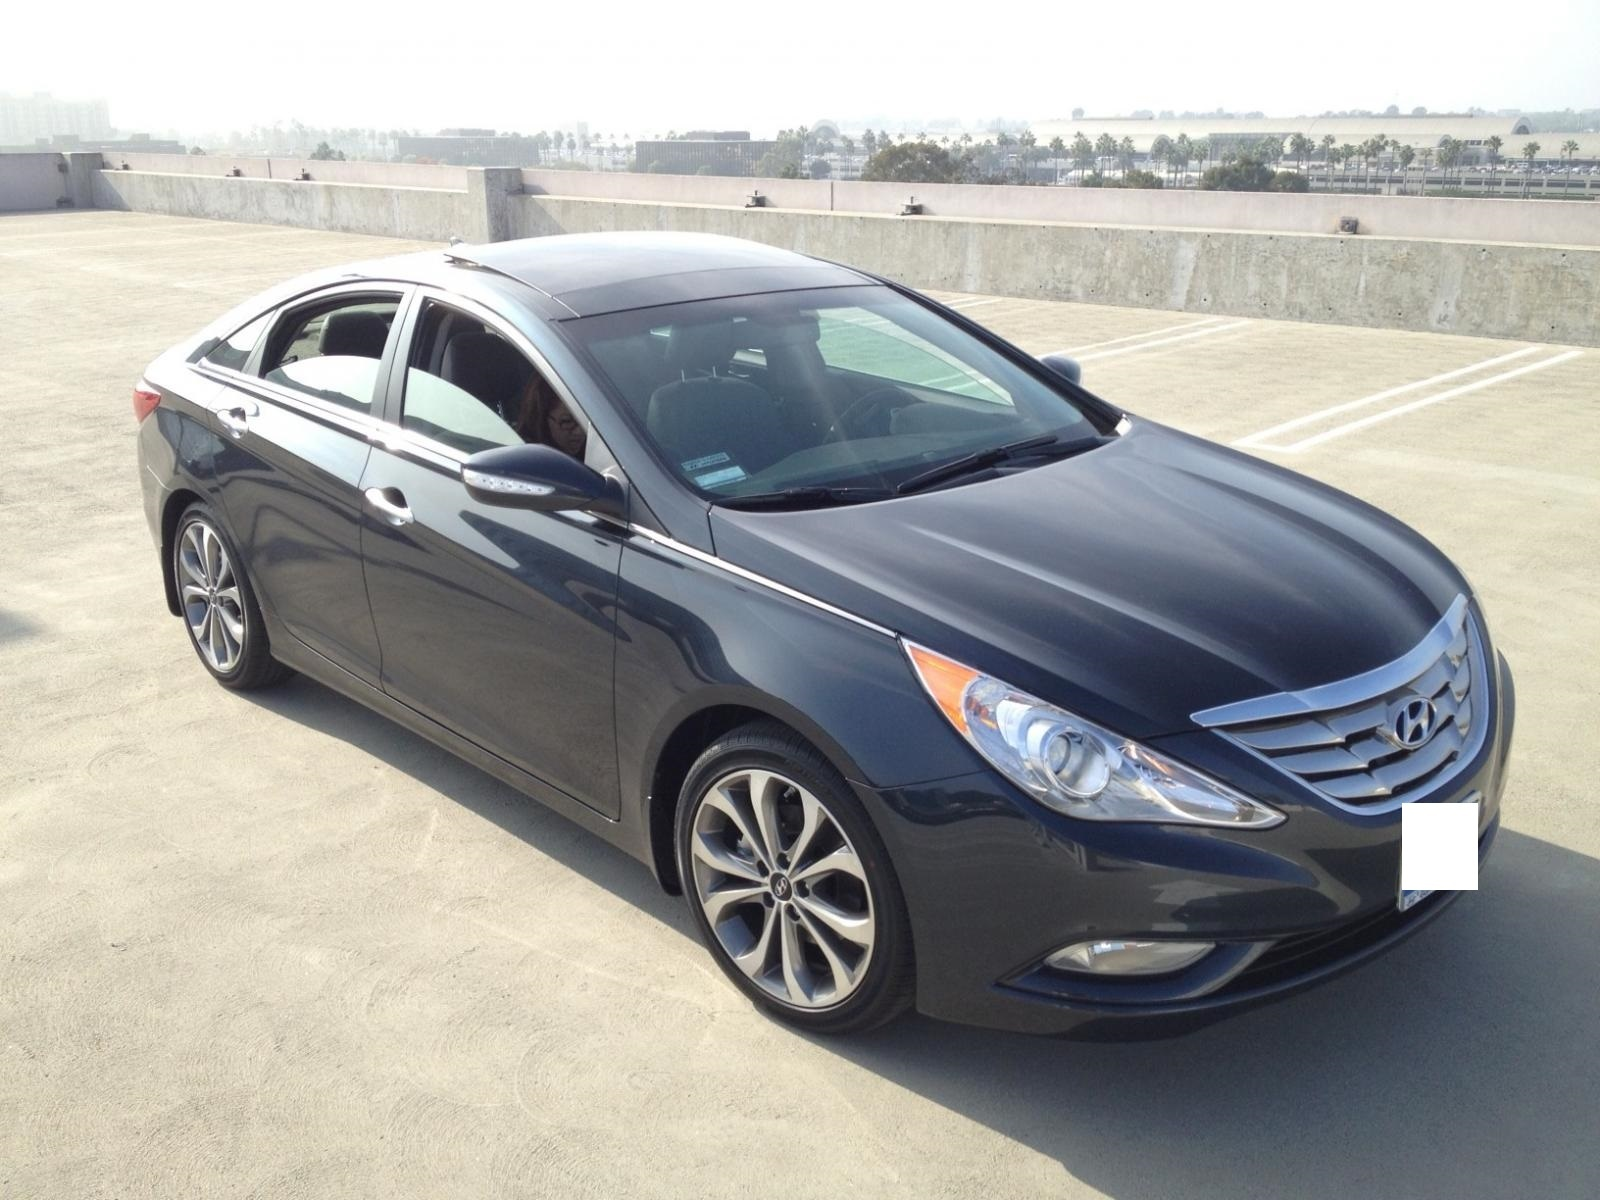 Picture of 2013 Hyundai Sonata 2.0T Limited, exterior